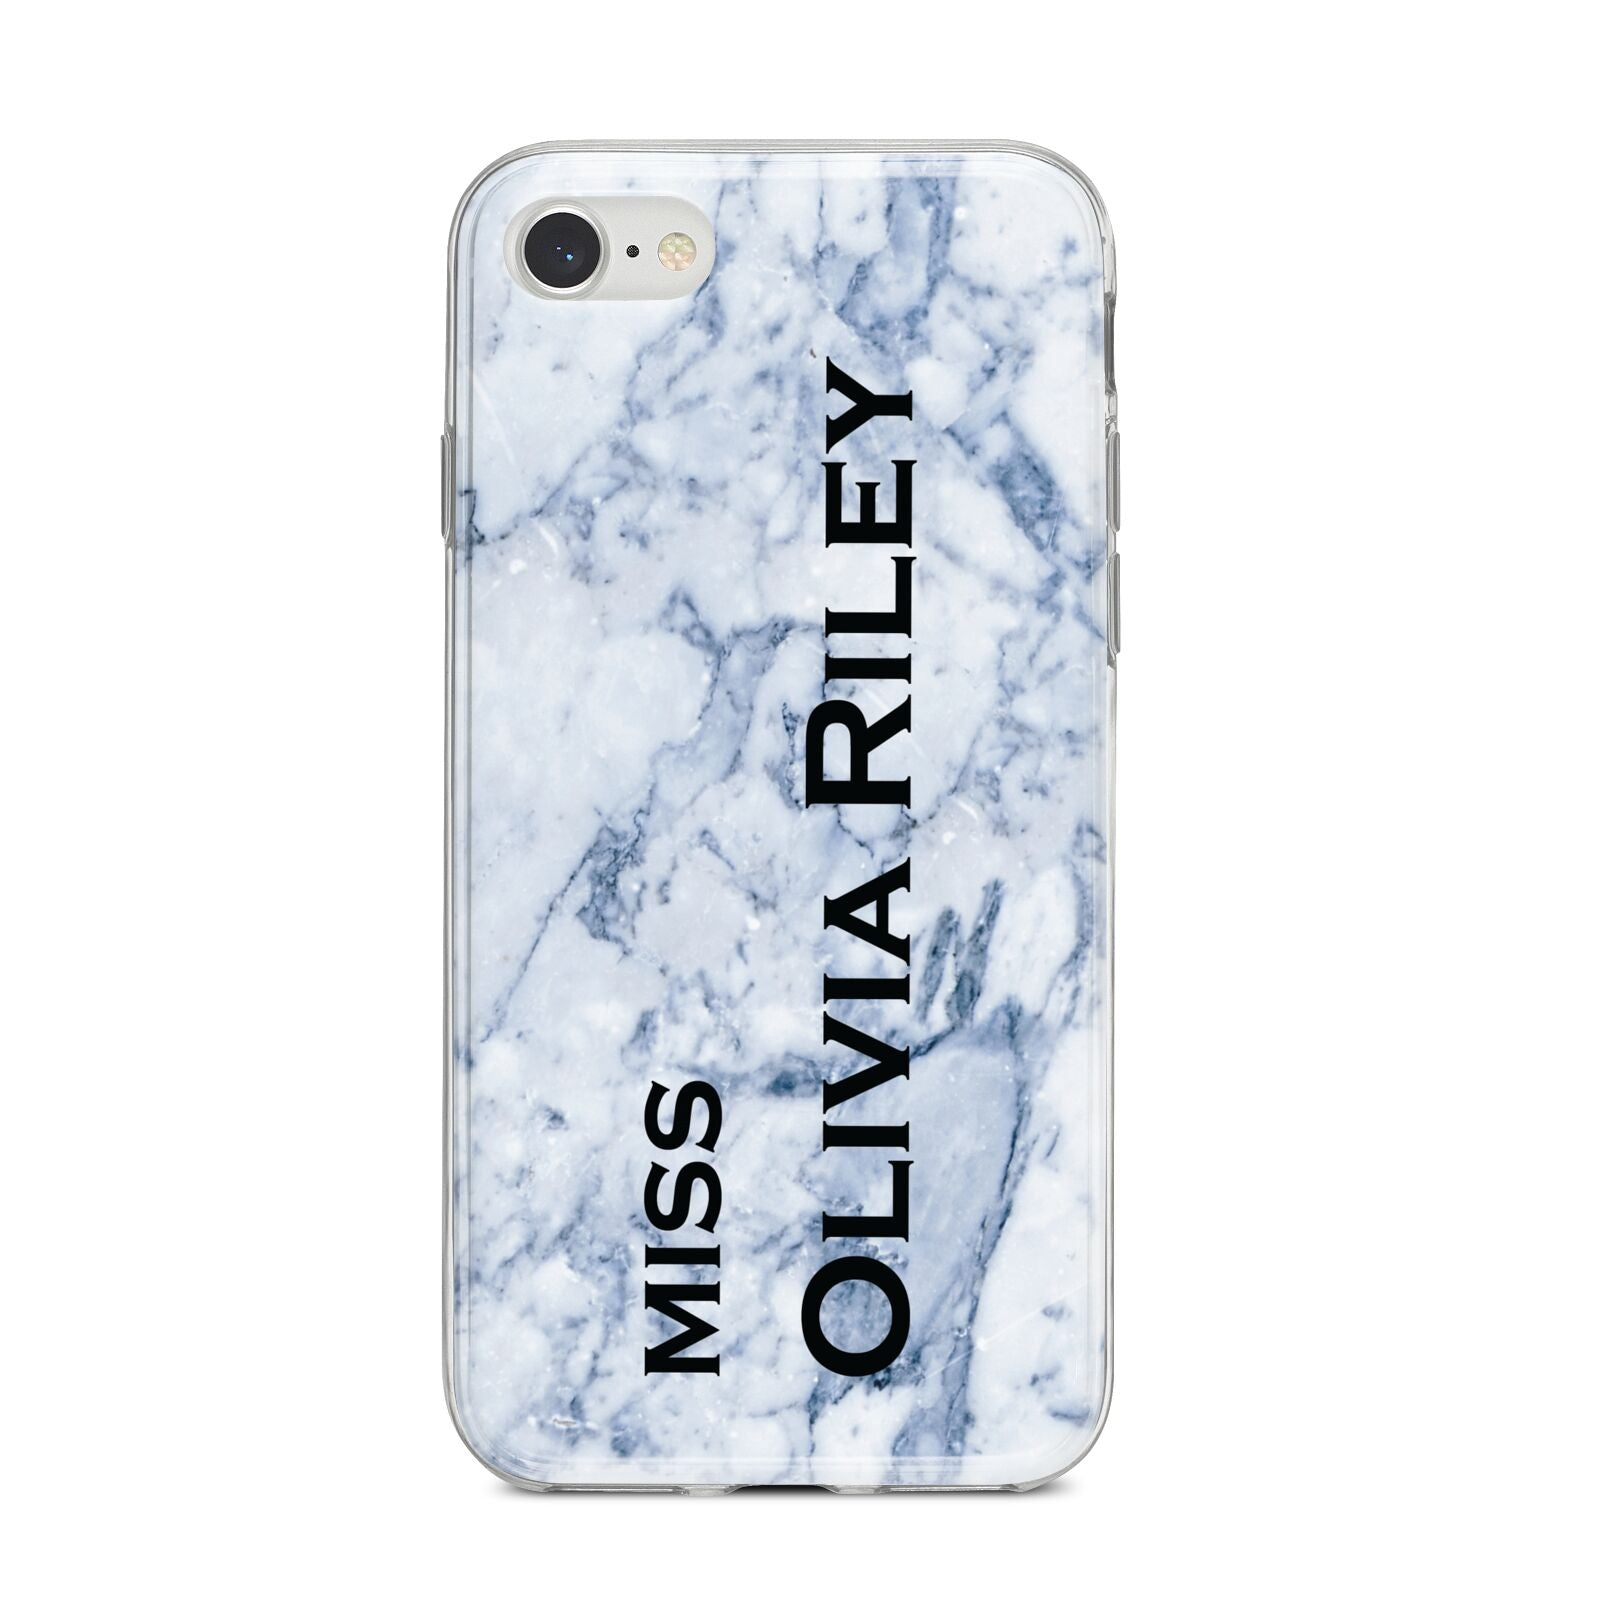 Full Name Grey Marble iPhone 8 Bumper Case on Silver iPhone